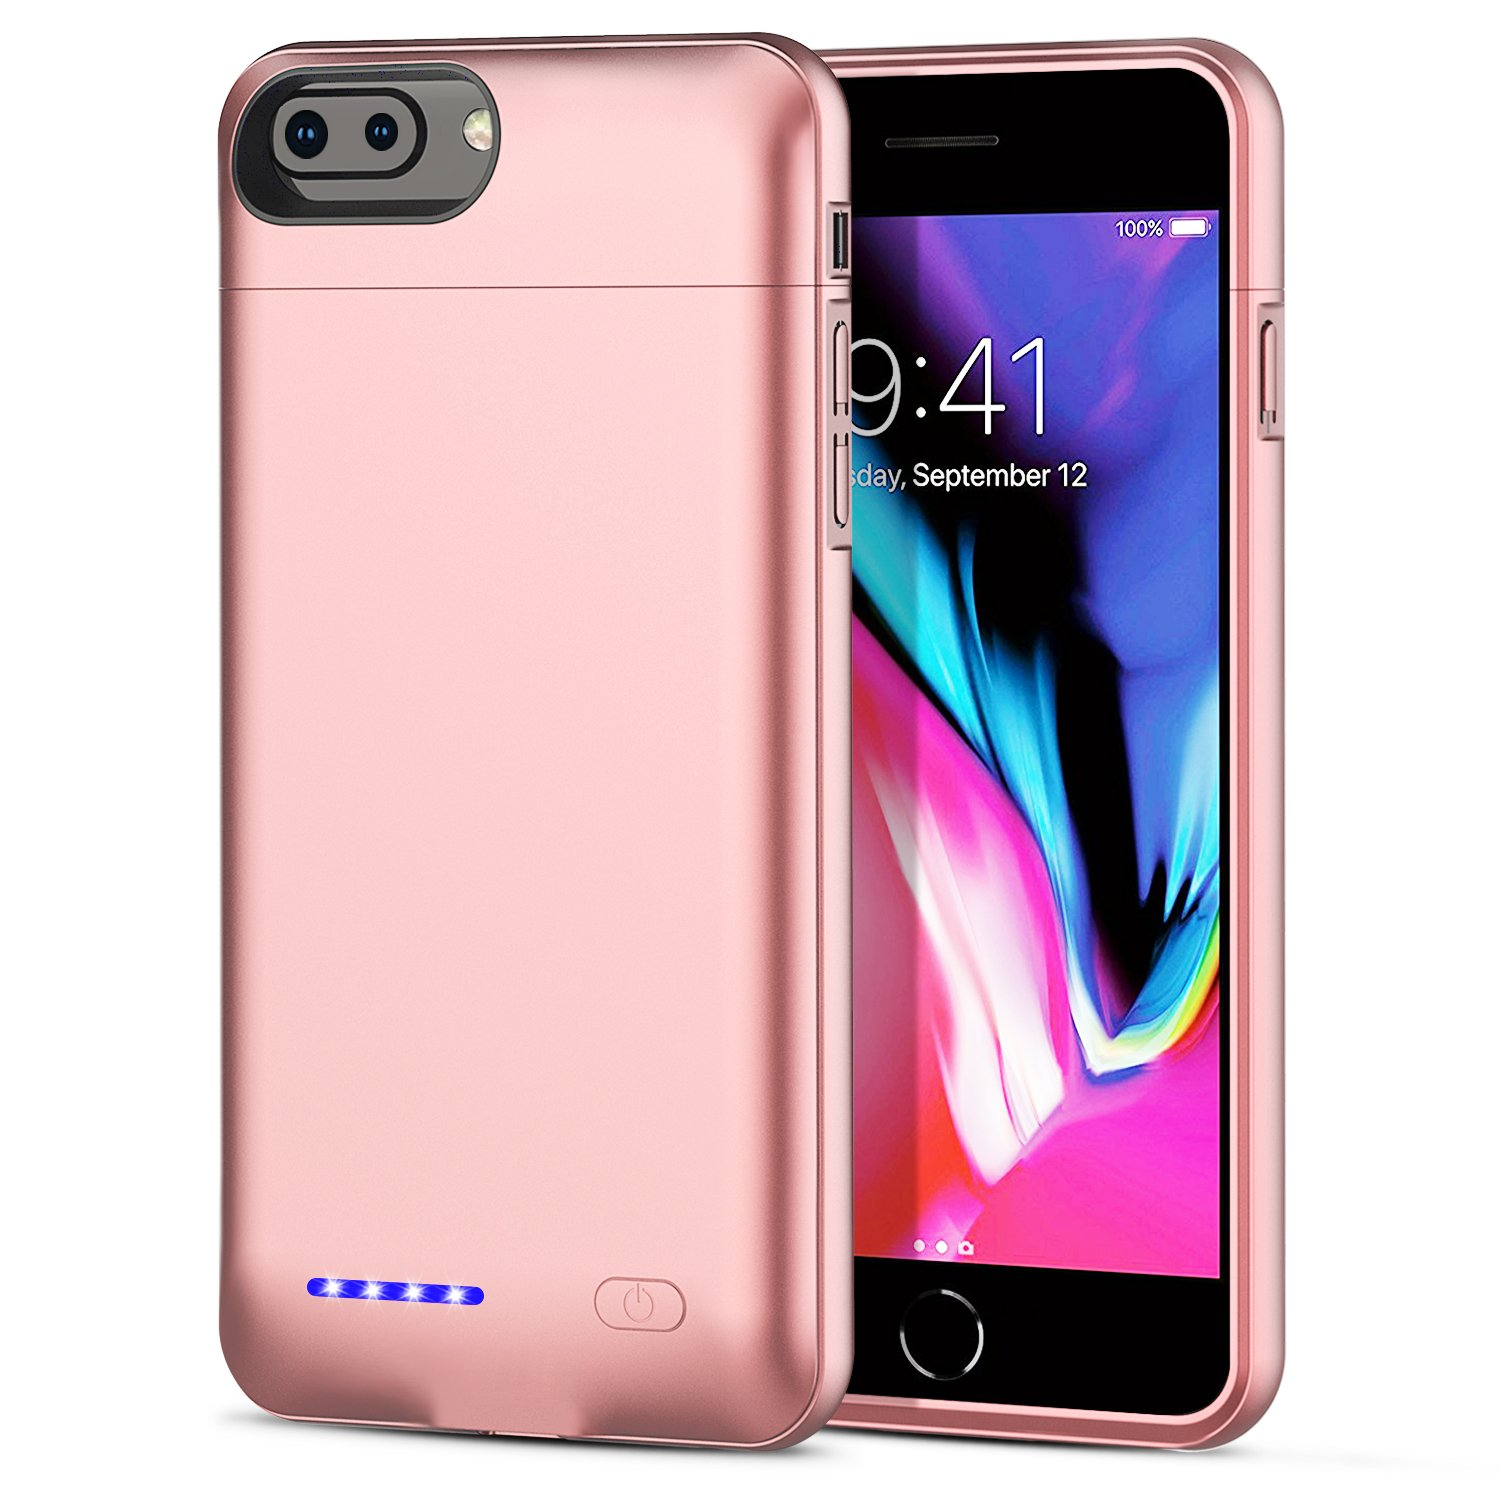 iPhone 8 Plus / 7 Plus / 6S Plus Battery Case, SUNWELL High Capacity Ultra Slim External Charger Case iPhone 8 Plus / 7 Plus / 6 Plus / 6S Plus,4200mAh Battery Pack Juice (Rose Gold-5.5'')